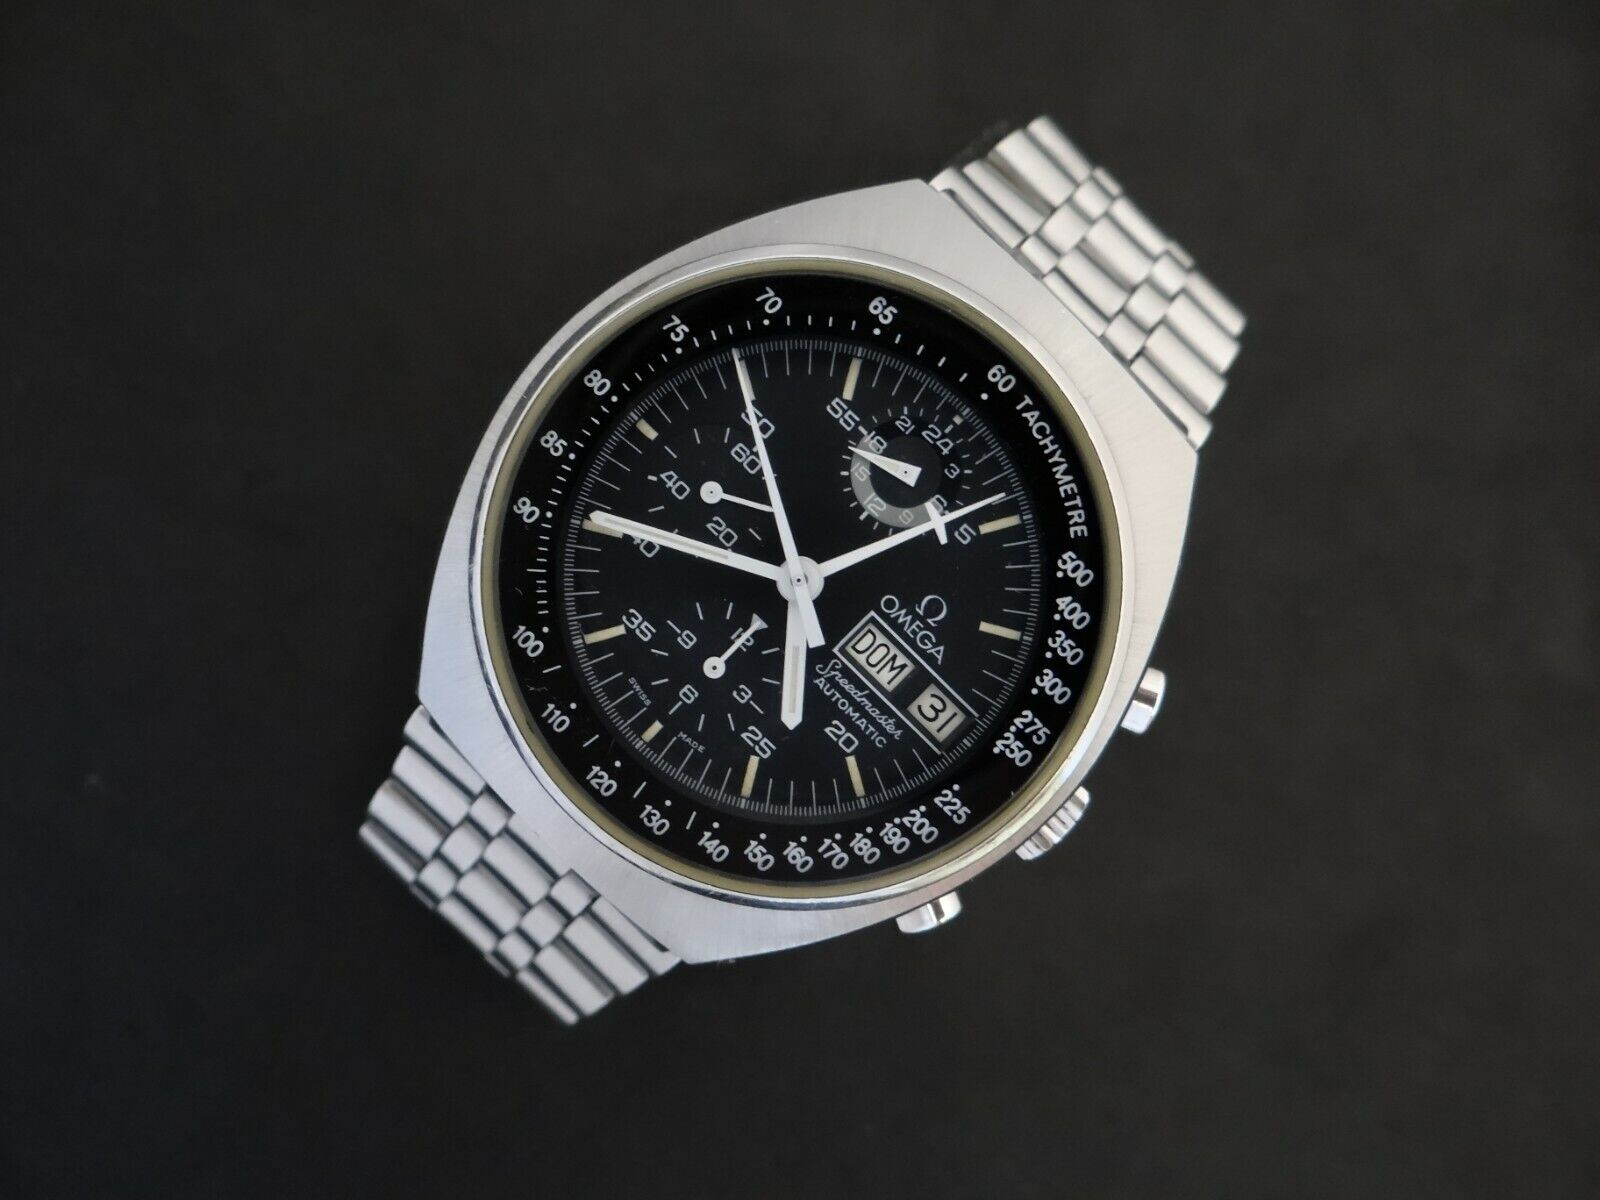 VINTAGE OMEGA SPEEDMASTER MARK 4.5 CHRONOGRAPH AUTOMATIC REF 176.0012 NEAR MINT - watch picture 1